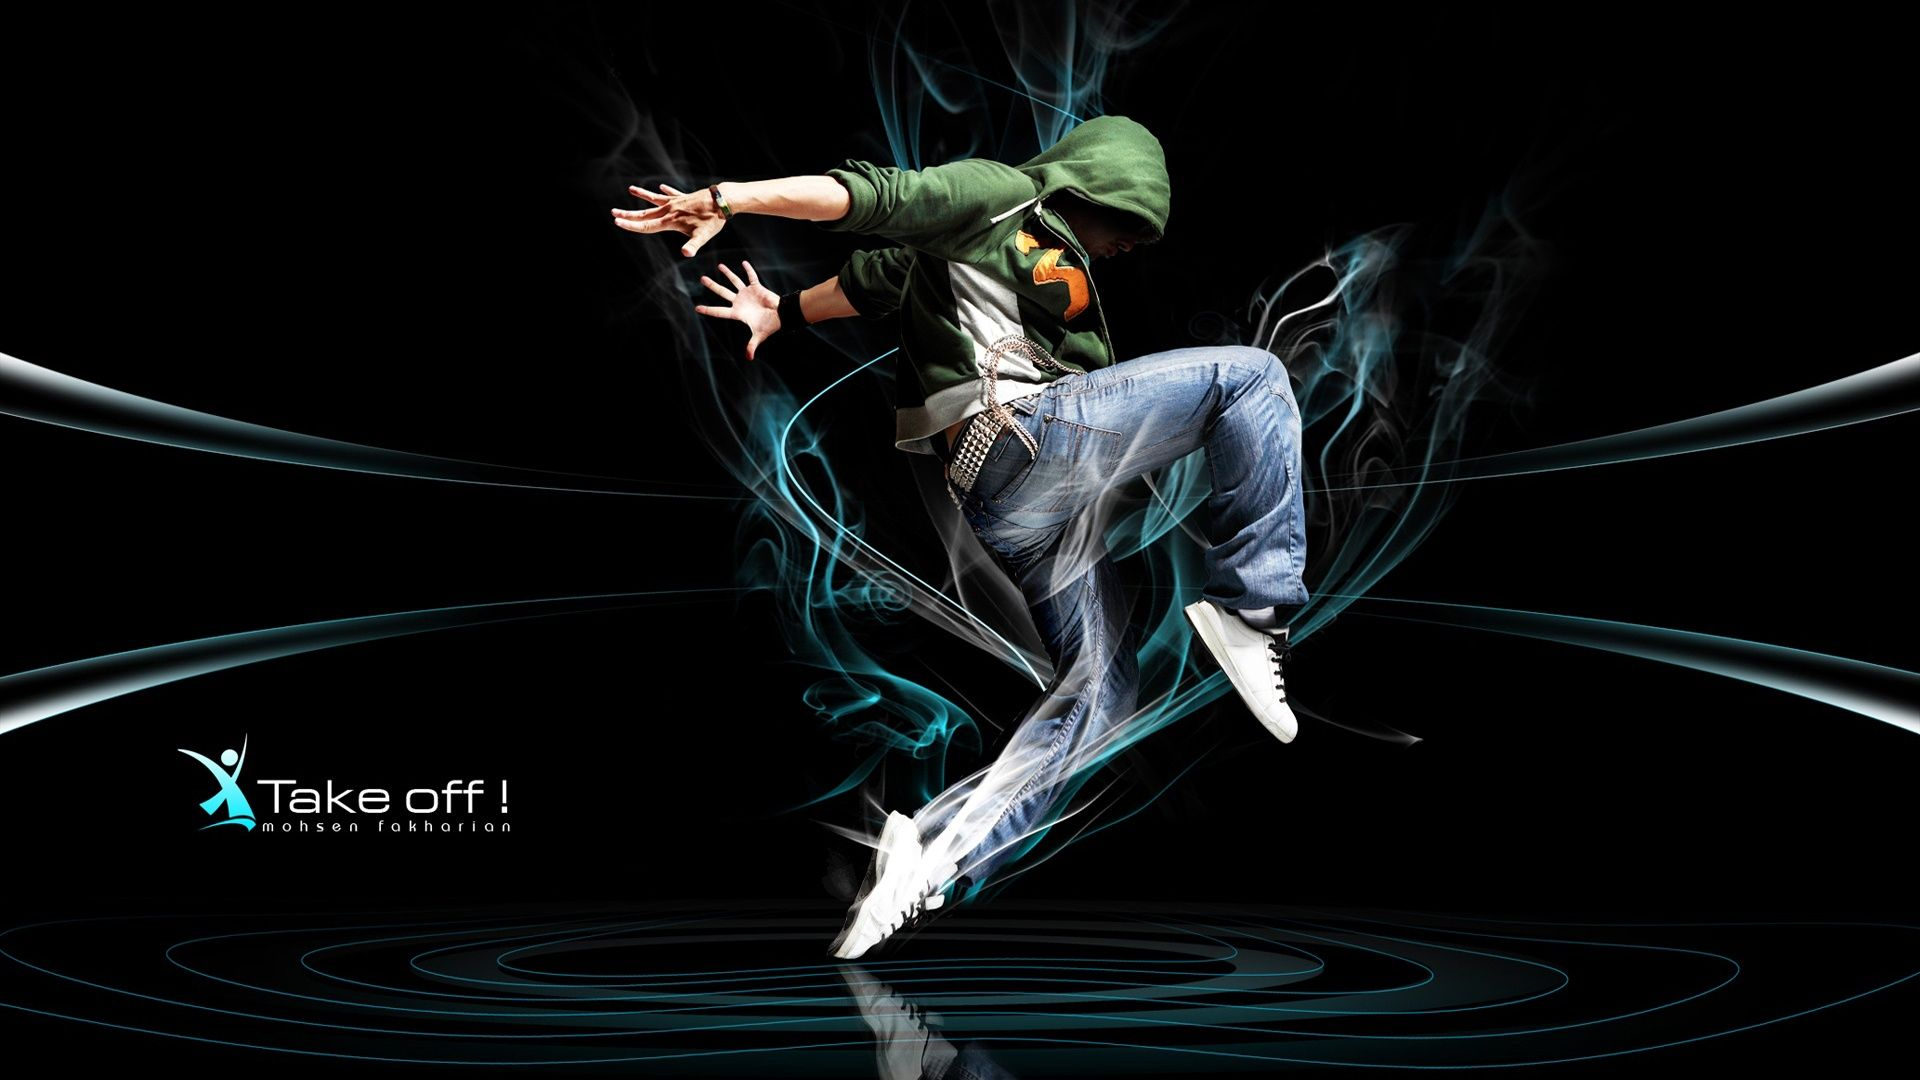 3d breakdance wallpaper 3d hip hop girl dance clip art girl hip 3d breakdance wallpaper 3d hip hop girl dance clip art girl hip voltagebd